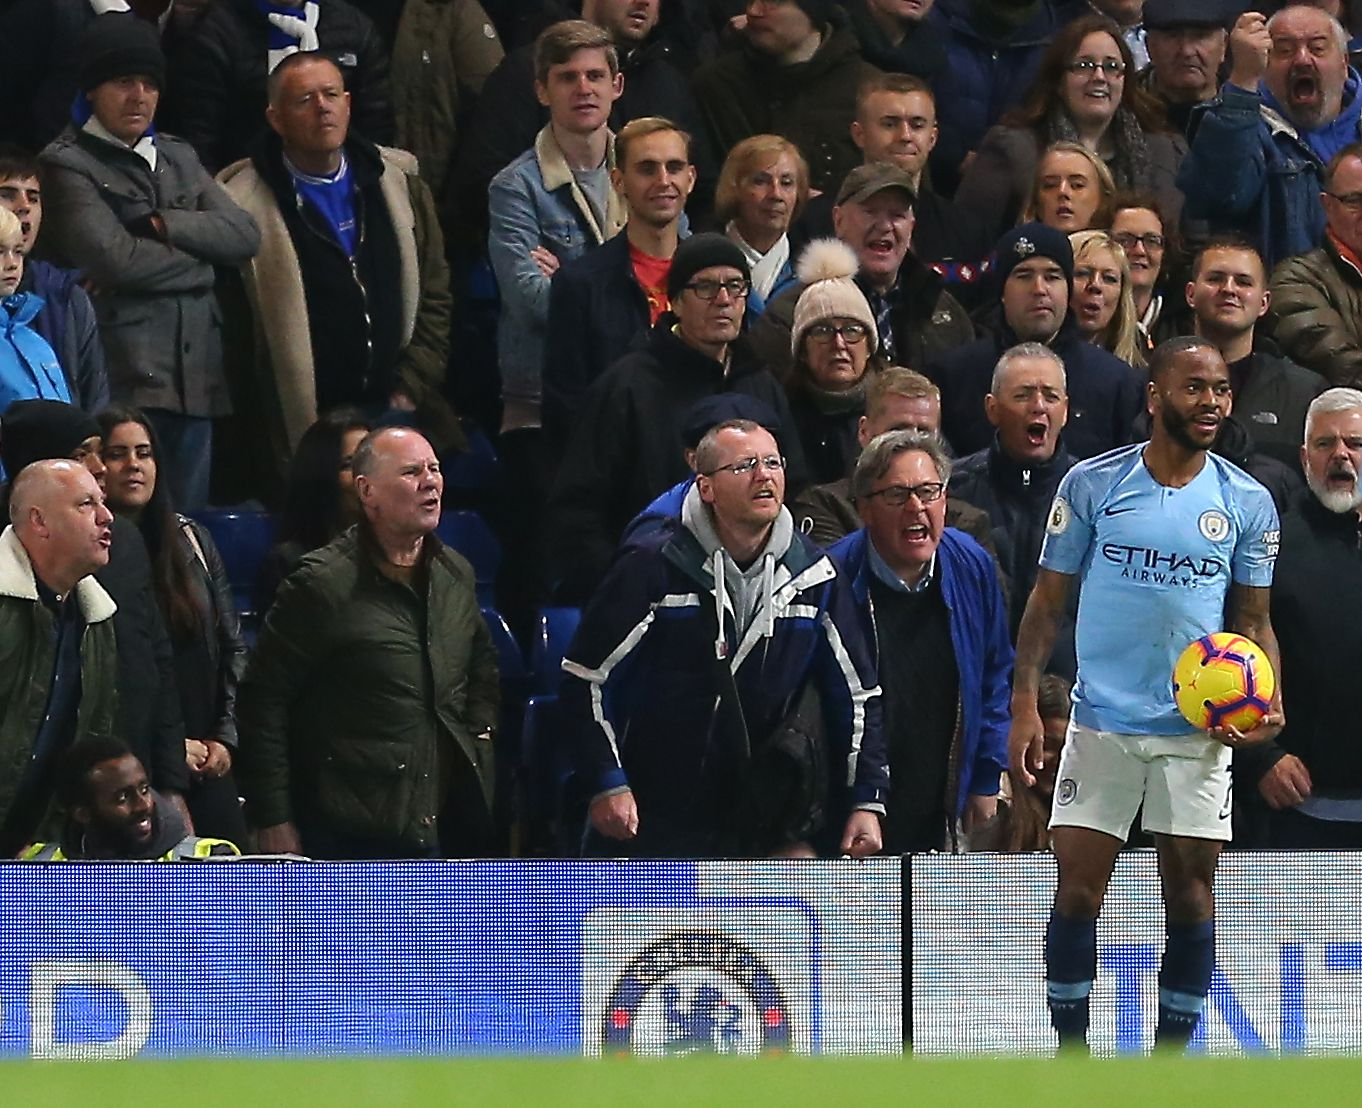 Raheem Sterling of Manchester City receives alleged abuse from Chelsea fans Chelsea v Manchester City, Premier League, Football, Stamford Bridge, London, UK. (Shutterstock)